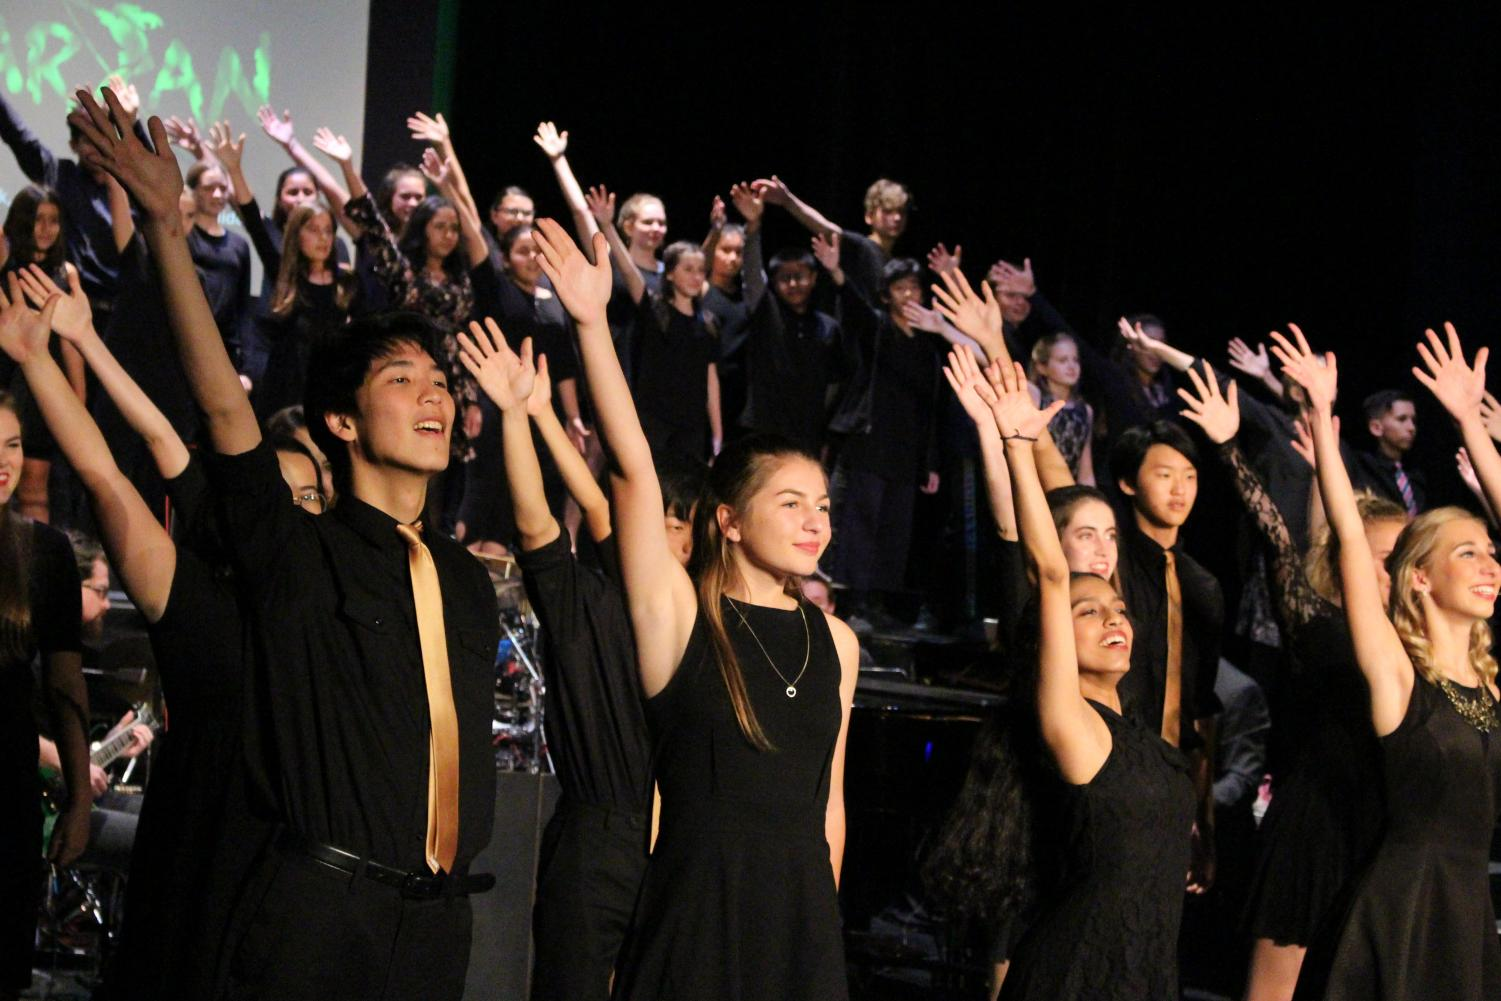 Talented choir students sing at Broadway Cabaret in the theater on Nov. 16.